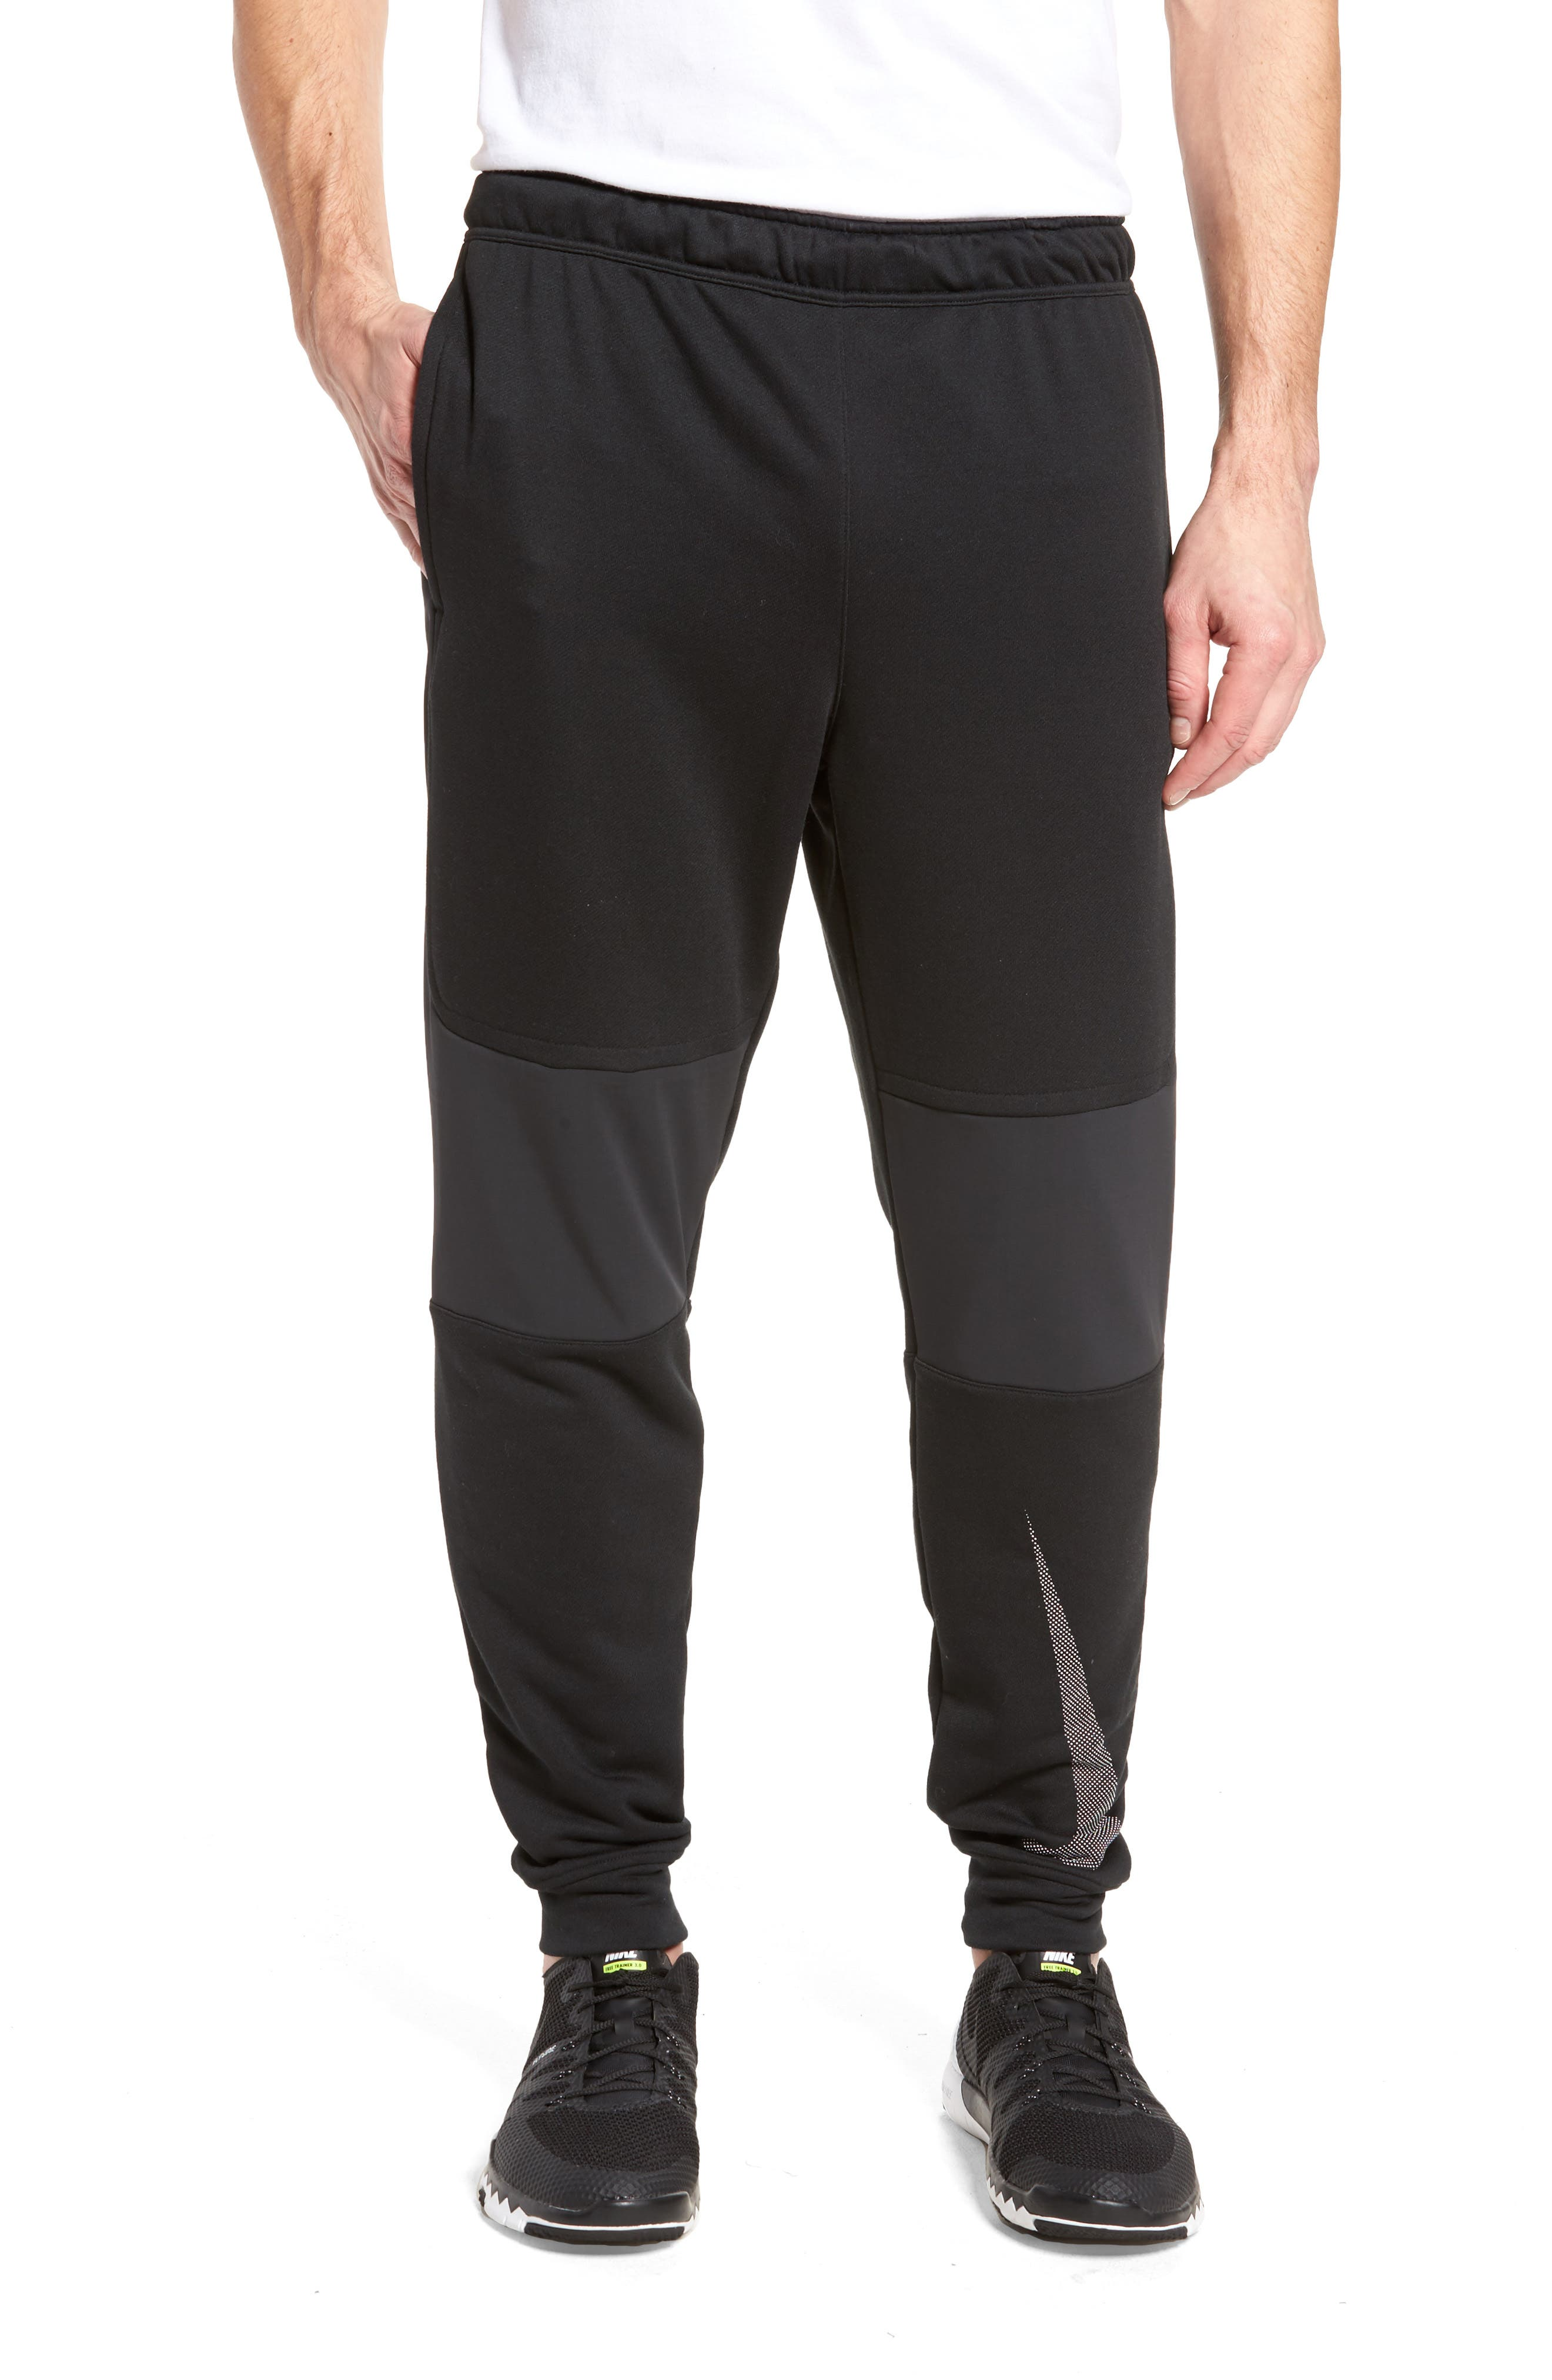 Training Project X Jogger Pants,                             Main thumbnail 1, color,                             010